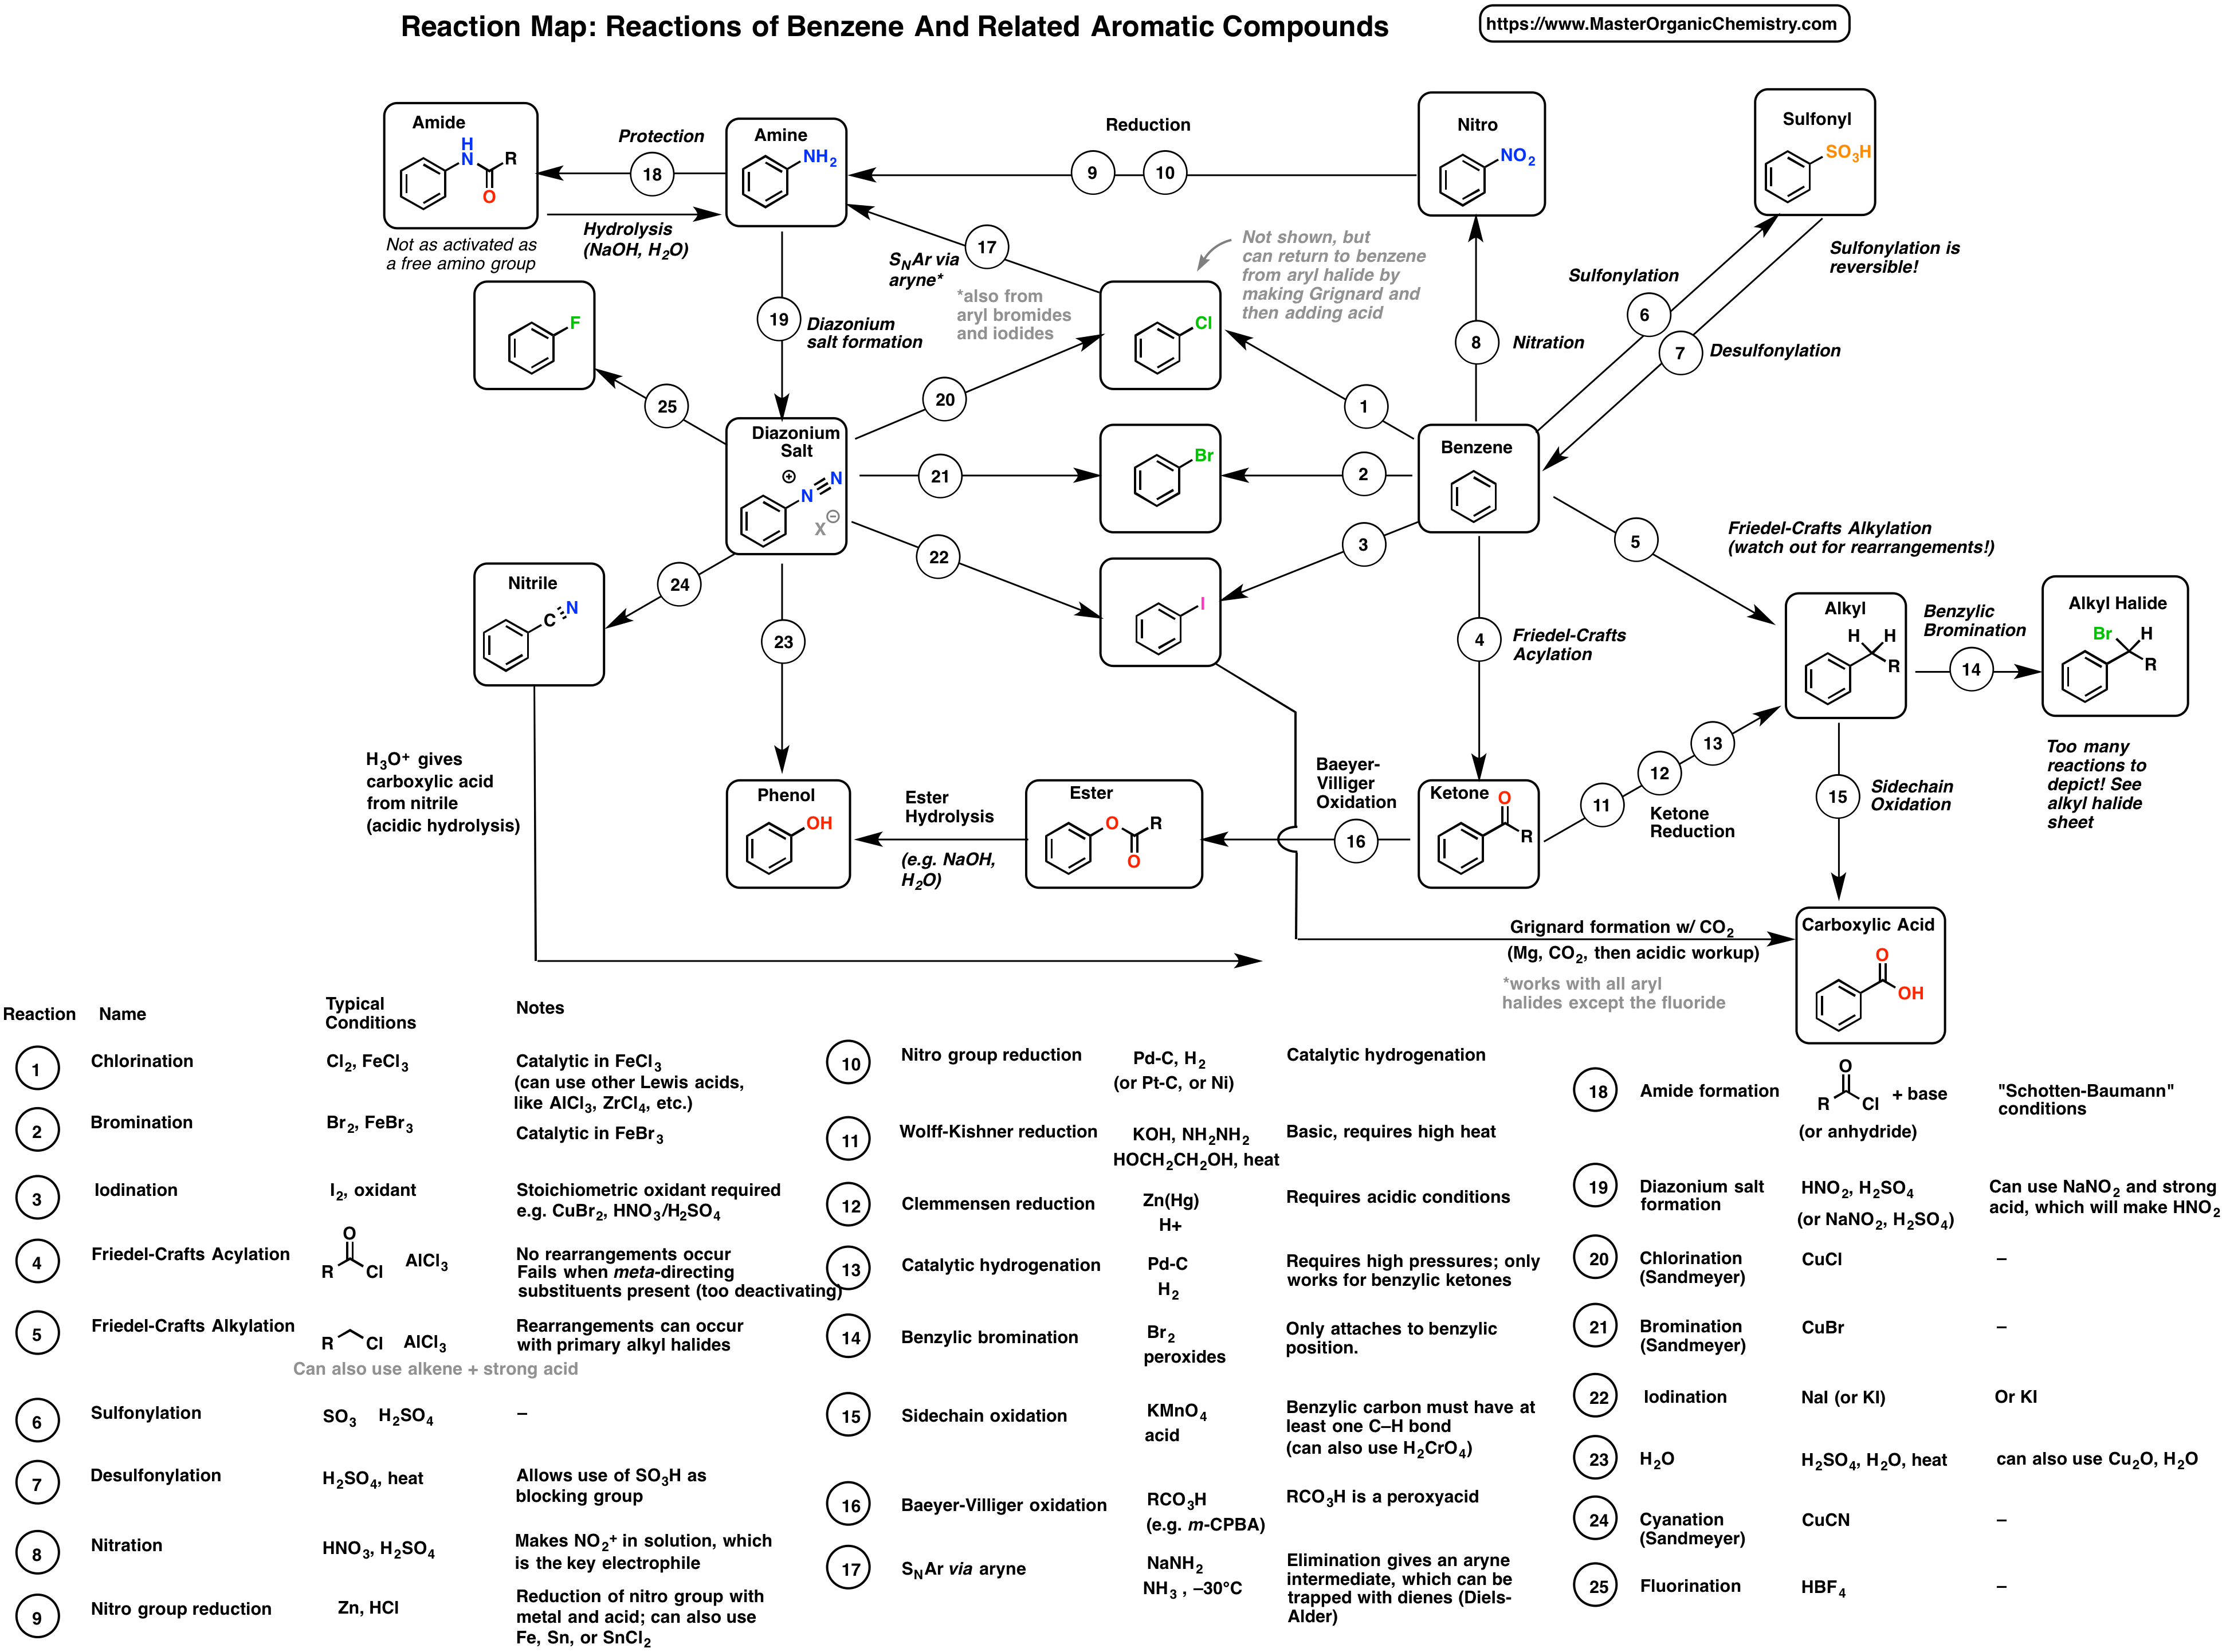 Synthesis 7 Reaction Map Of Benzene And Related Aromatic Compounds